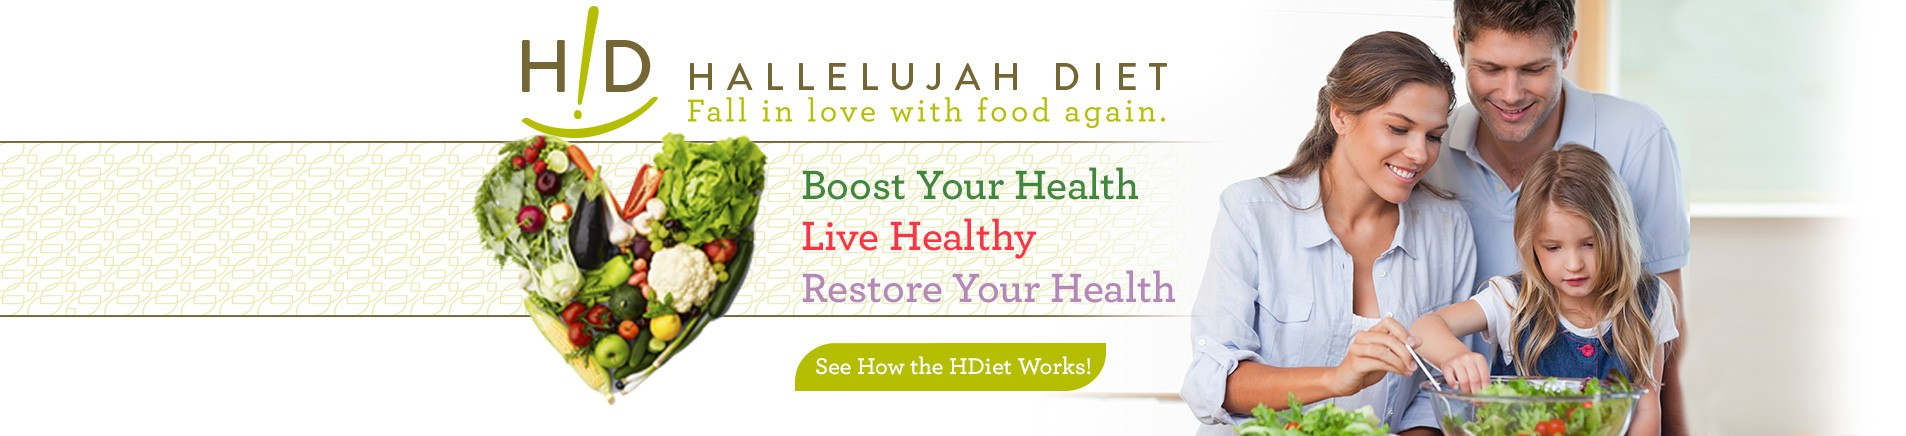 About The Hallelujah Diet Banner Slider MyHDiet Homepage Final